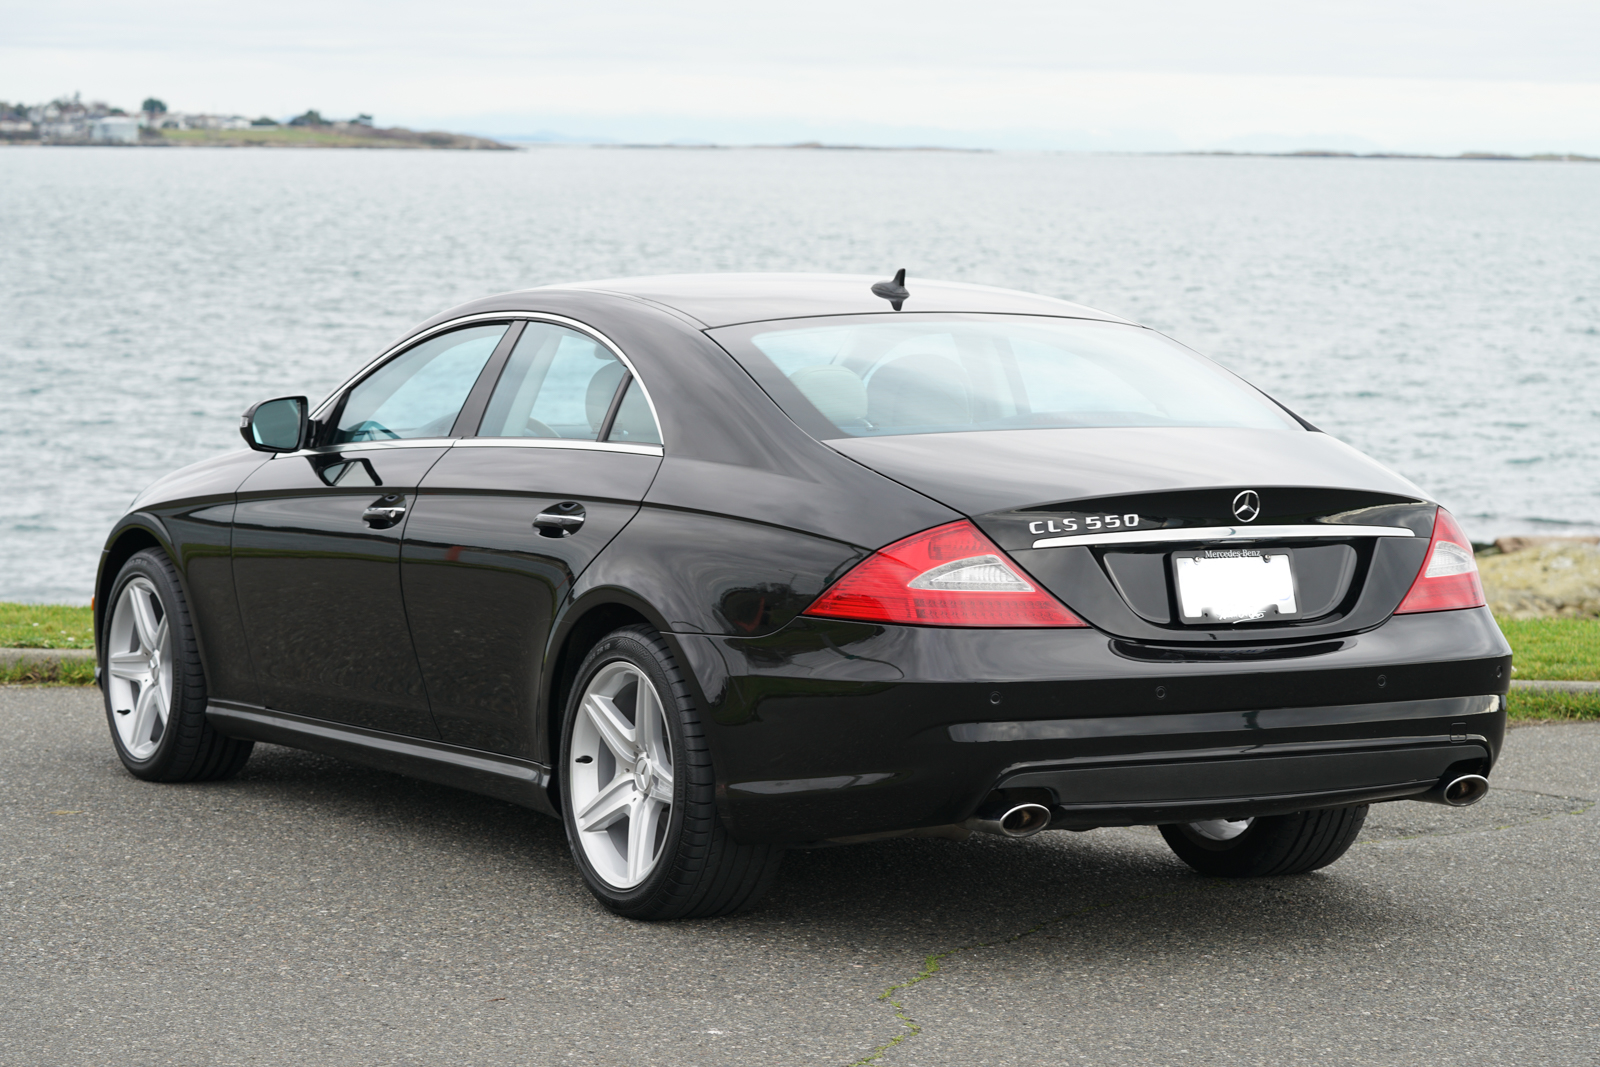 2009 mercedes benz cls 550 for sale silver arrow cars ltd. Black Bedroom Furniture Sets. Home Design Ideas